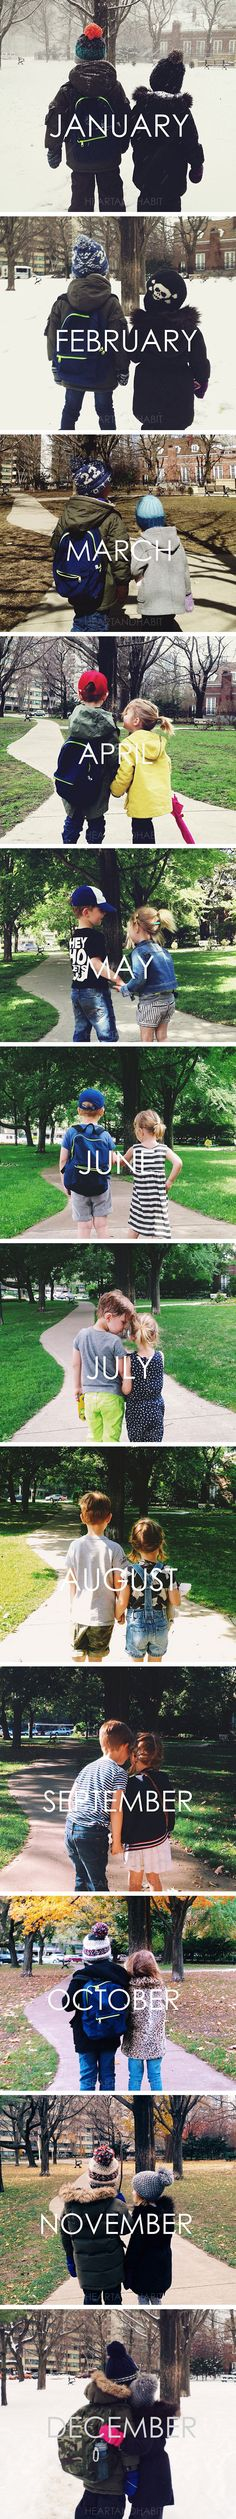 same spot every month | heart + habit. Don't have kids, but this is really sweet.